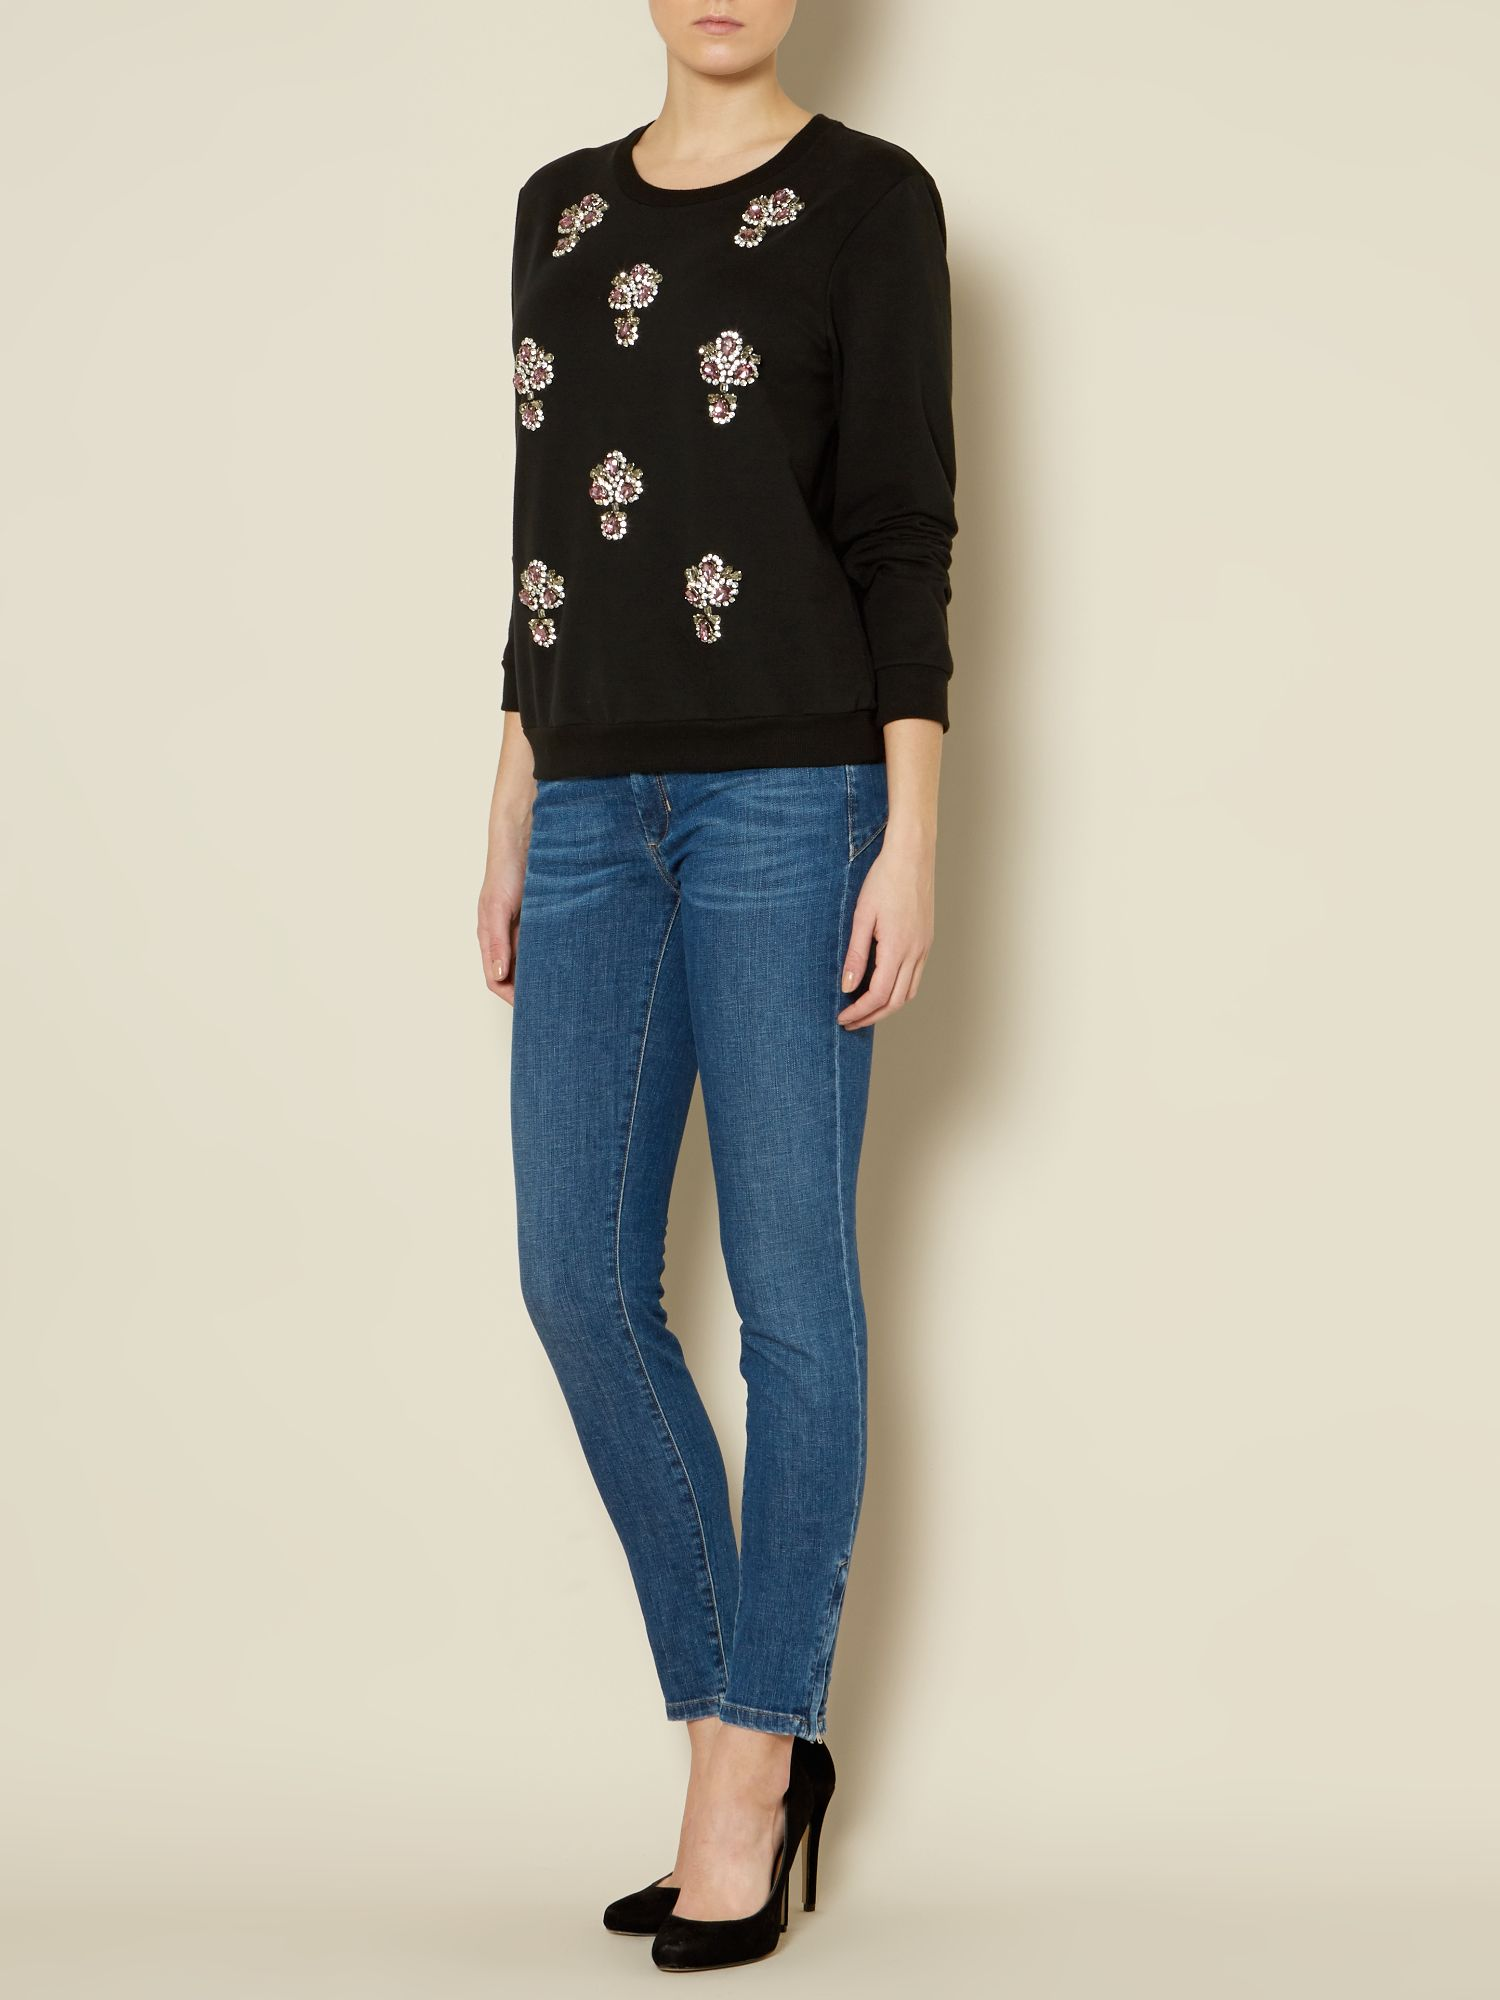 Sportmax Code Afona Long sleeve crystal embellished sweat Black - House of Fraser